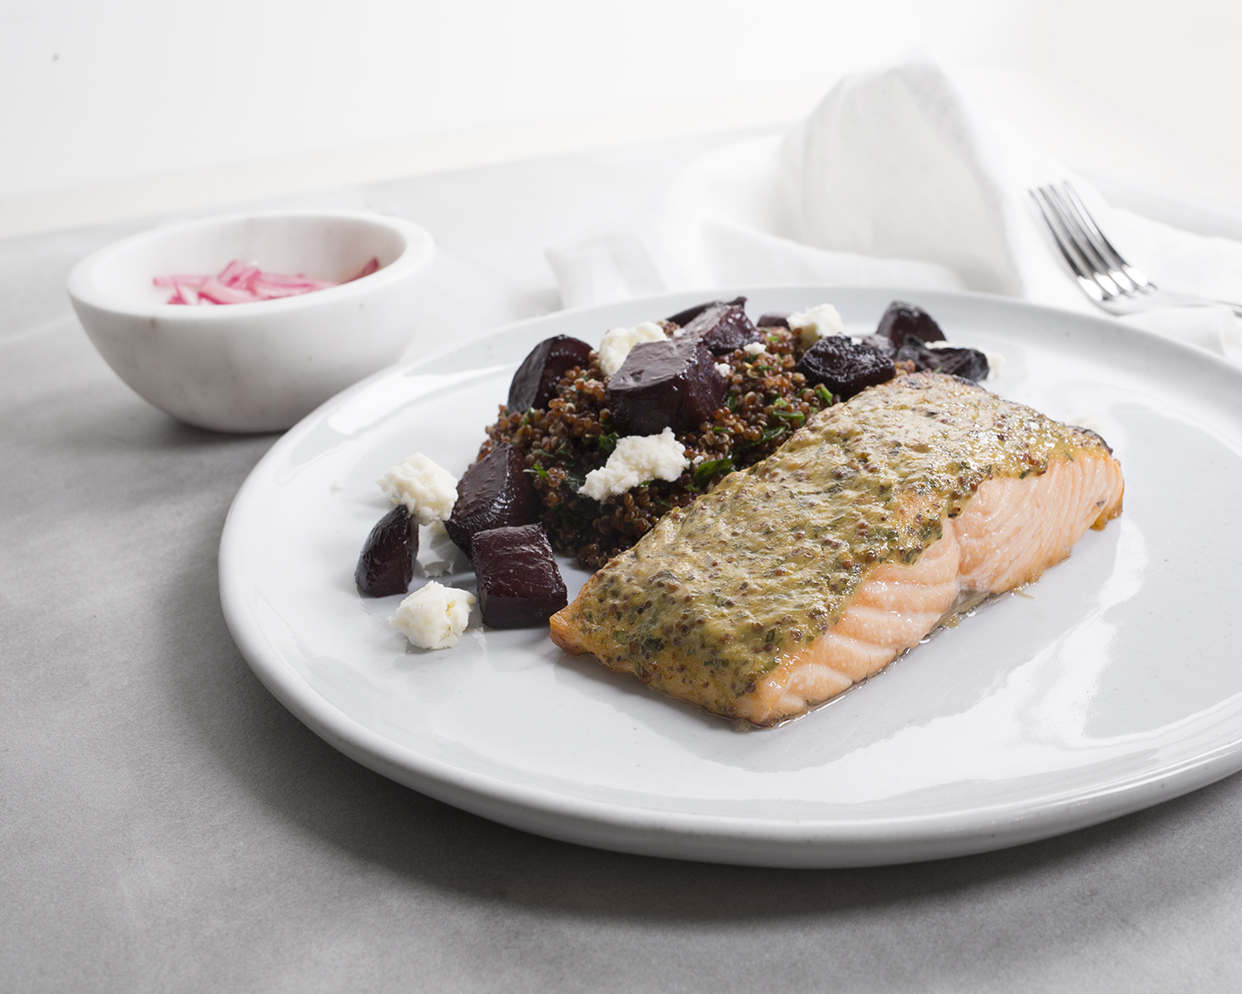 Stone Ground Mustard-Glazed Salmon